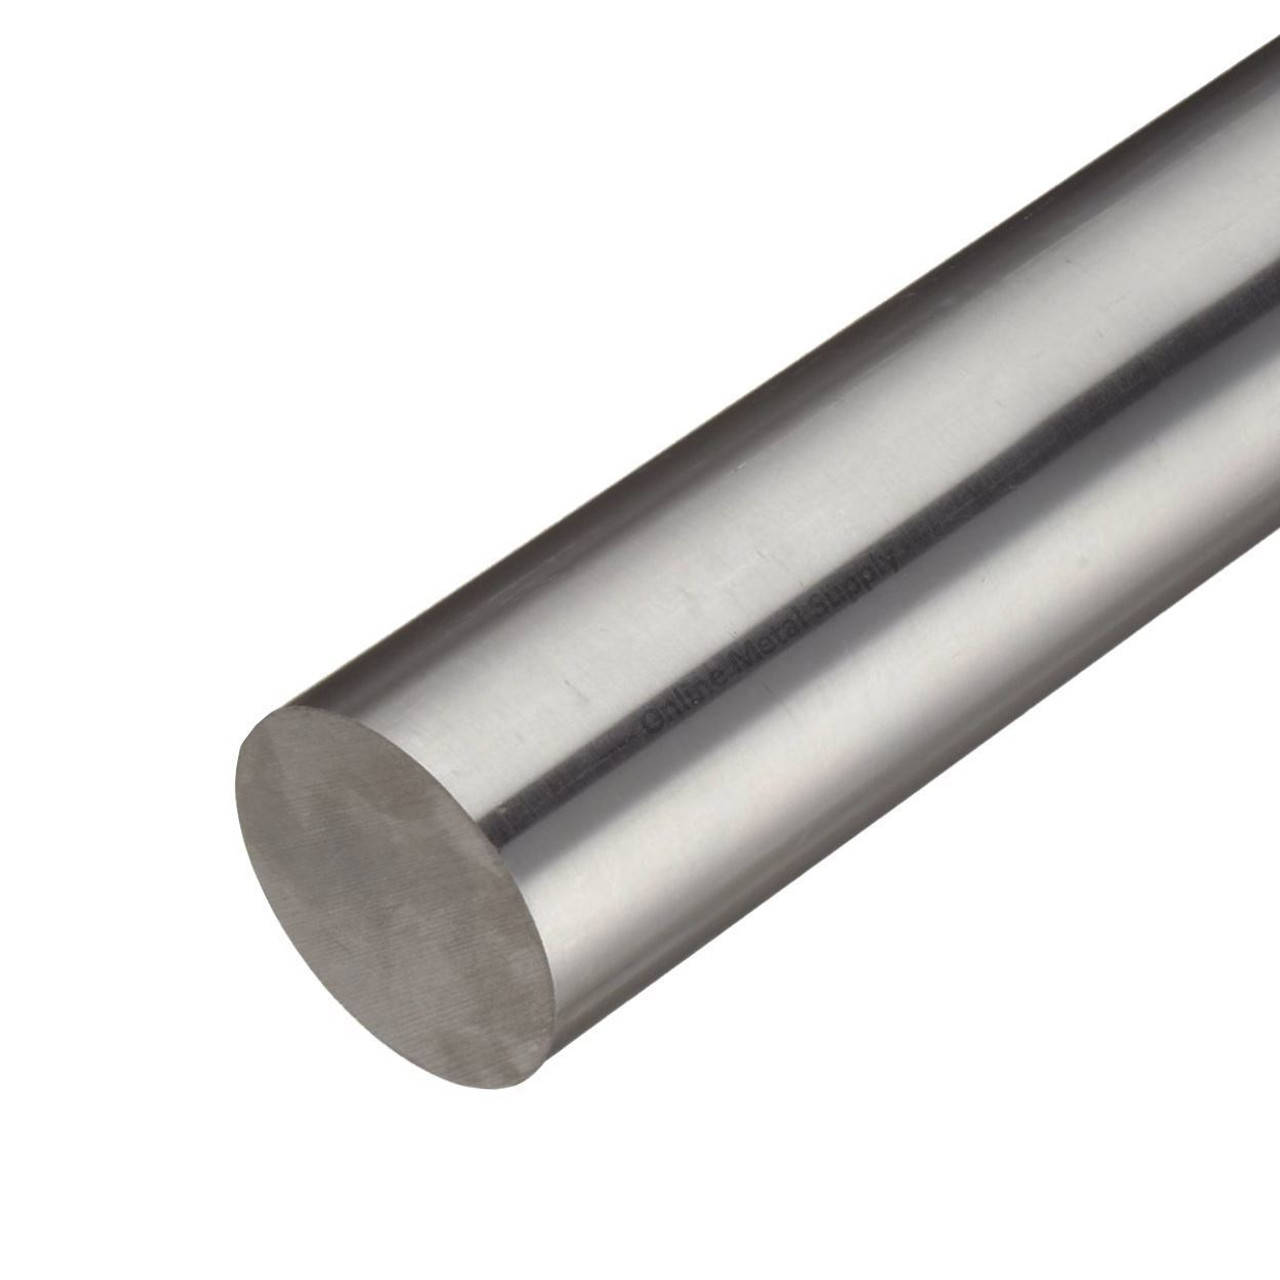 0.687 (11/16 inch) x 48 inches, 15-5 Cond A CF Stainless Steel Round Rod